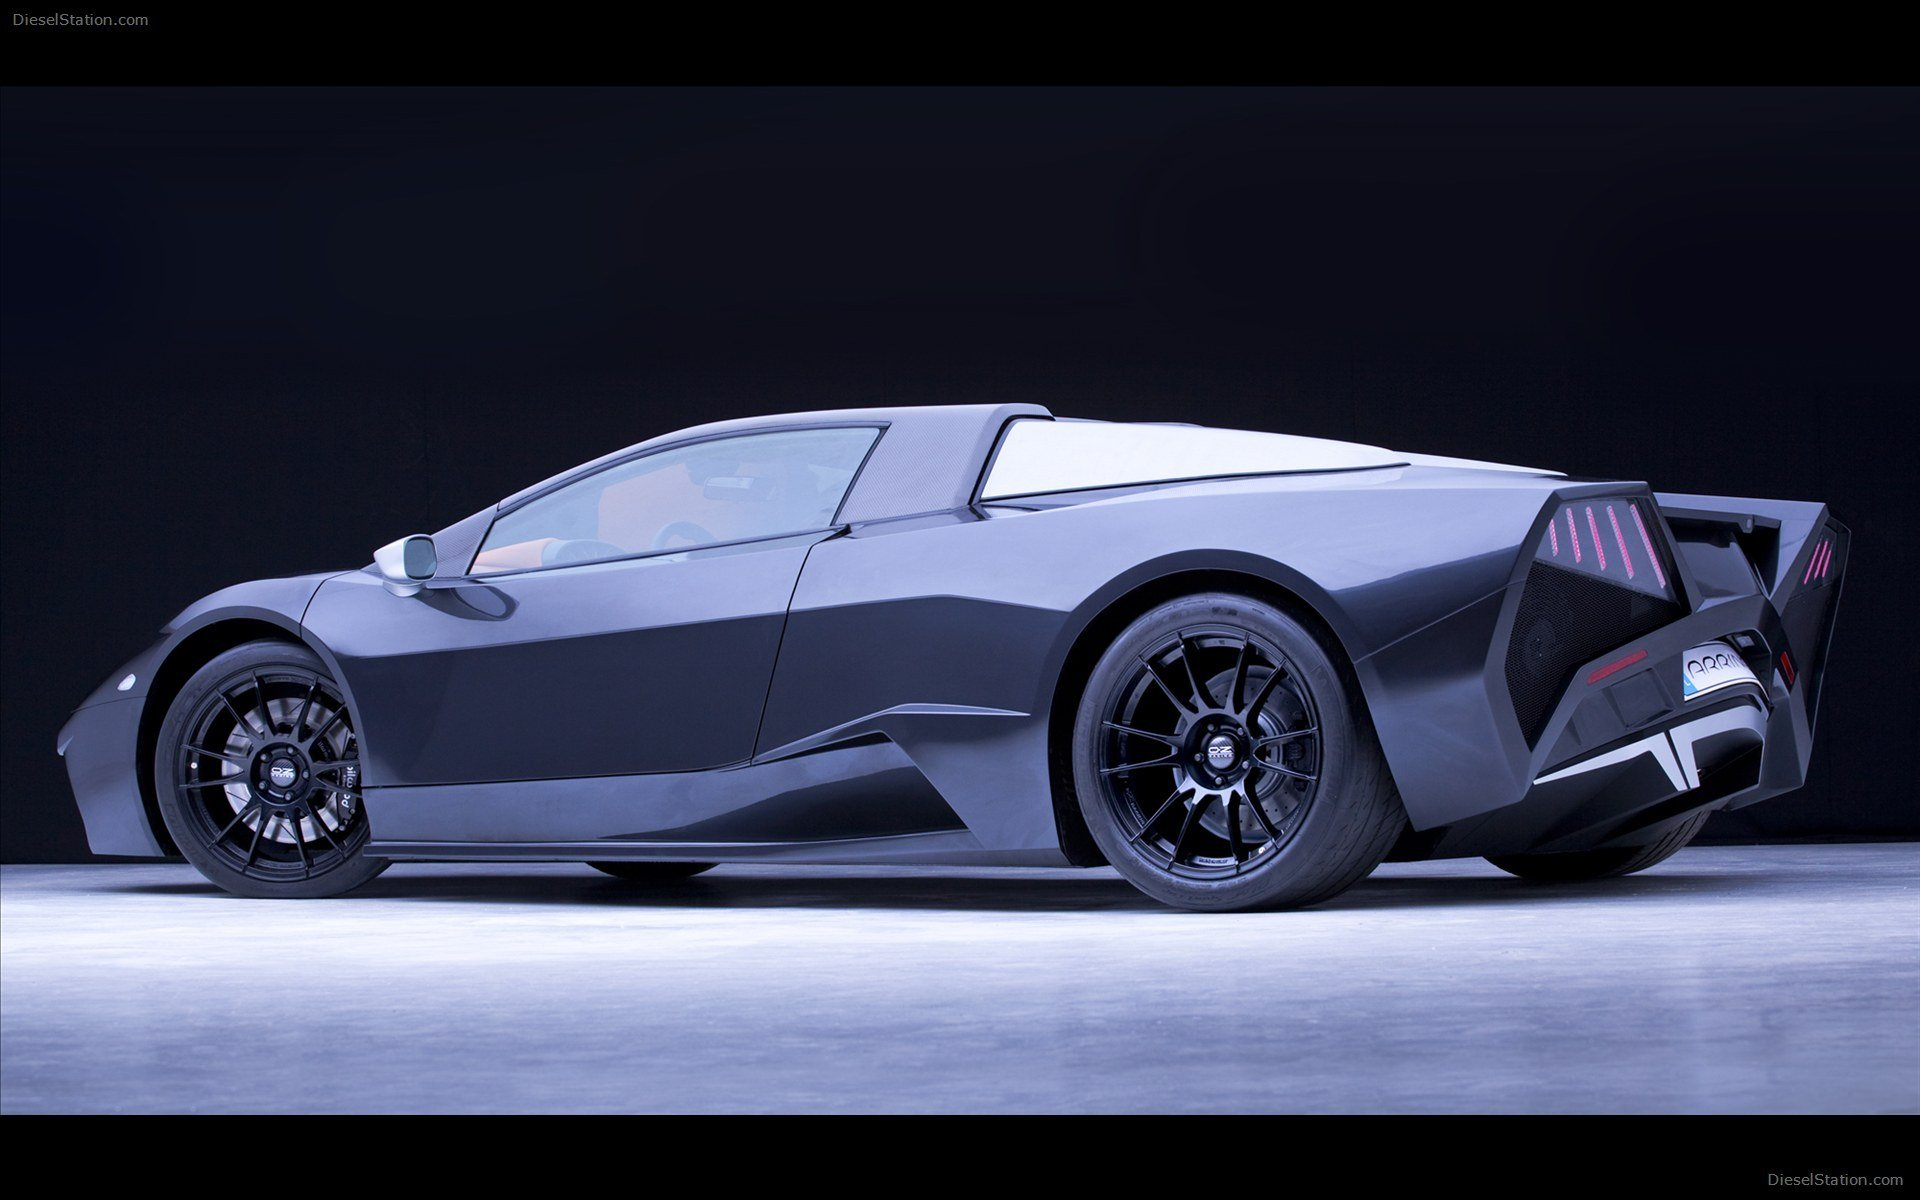 Latest Arrinera Supercar 2013 Widescreen Exotic Car Wallpaper 03 Free Download